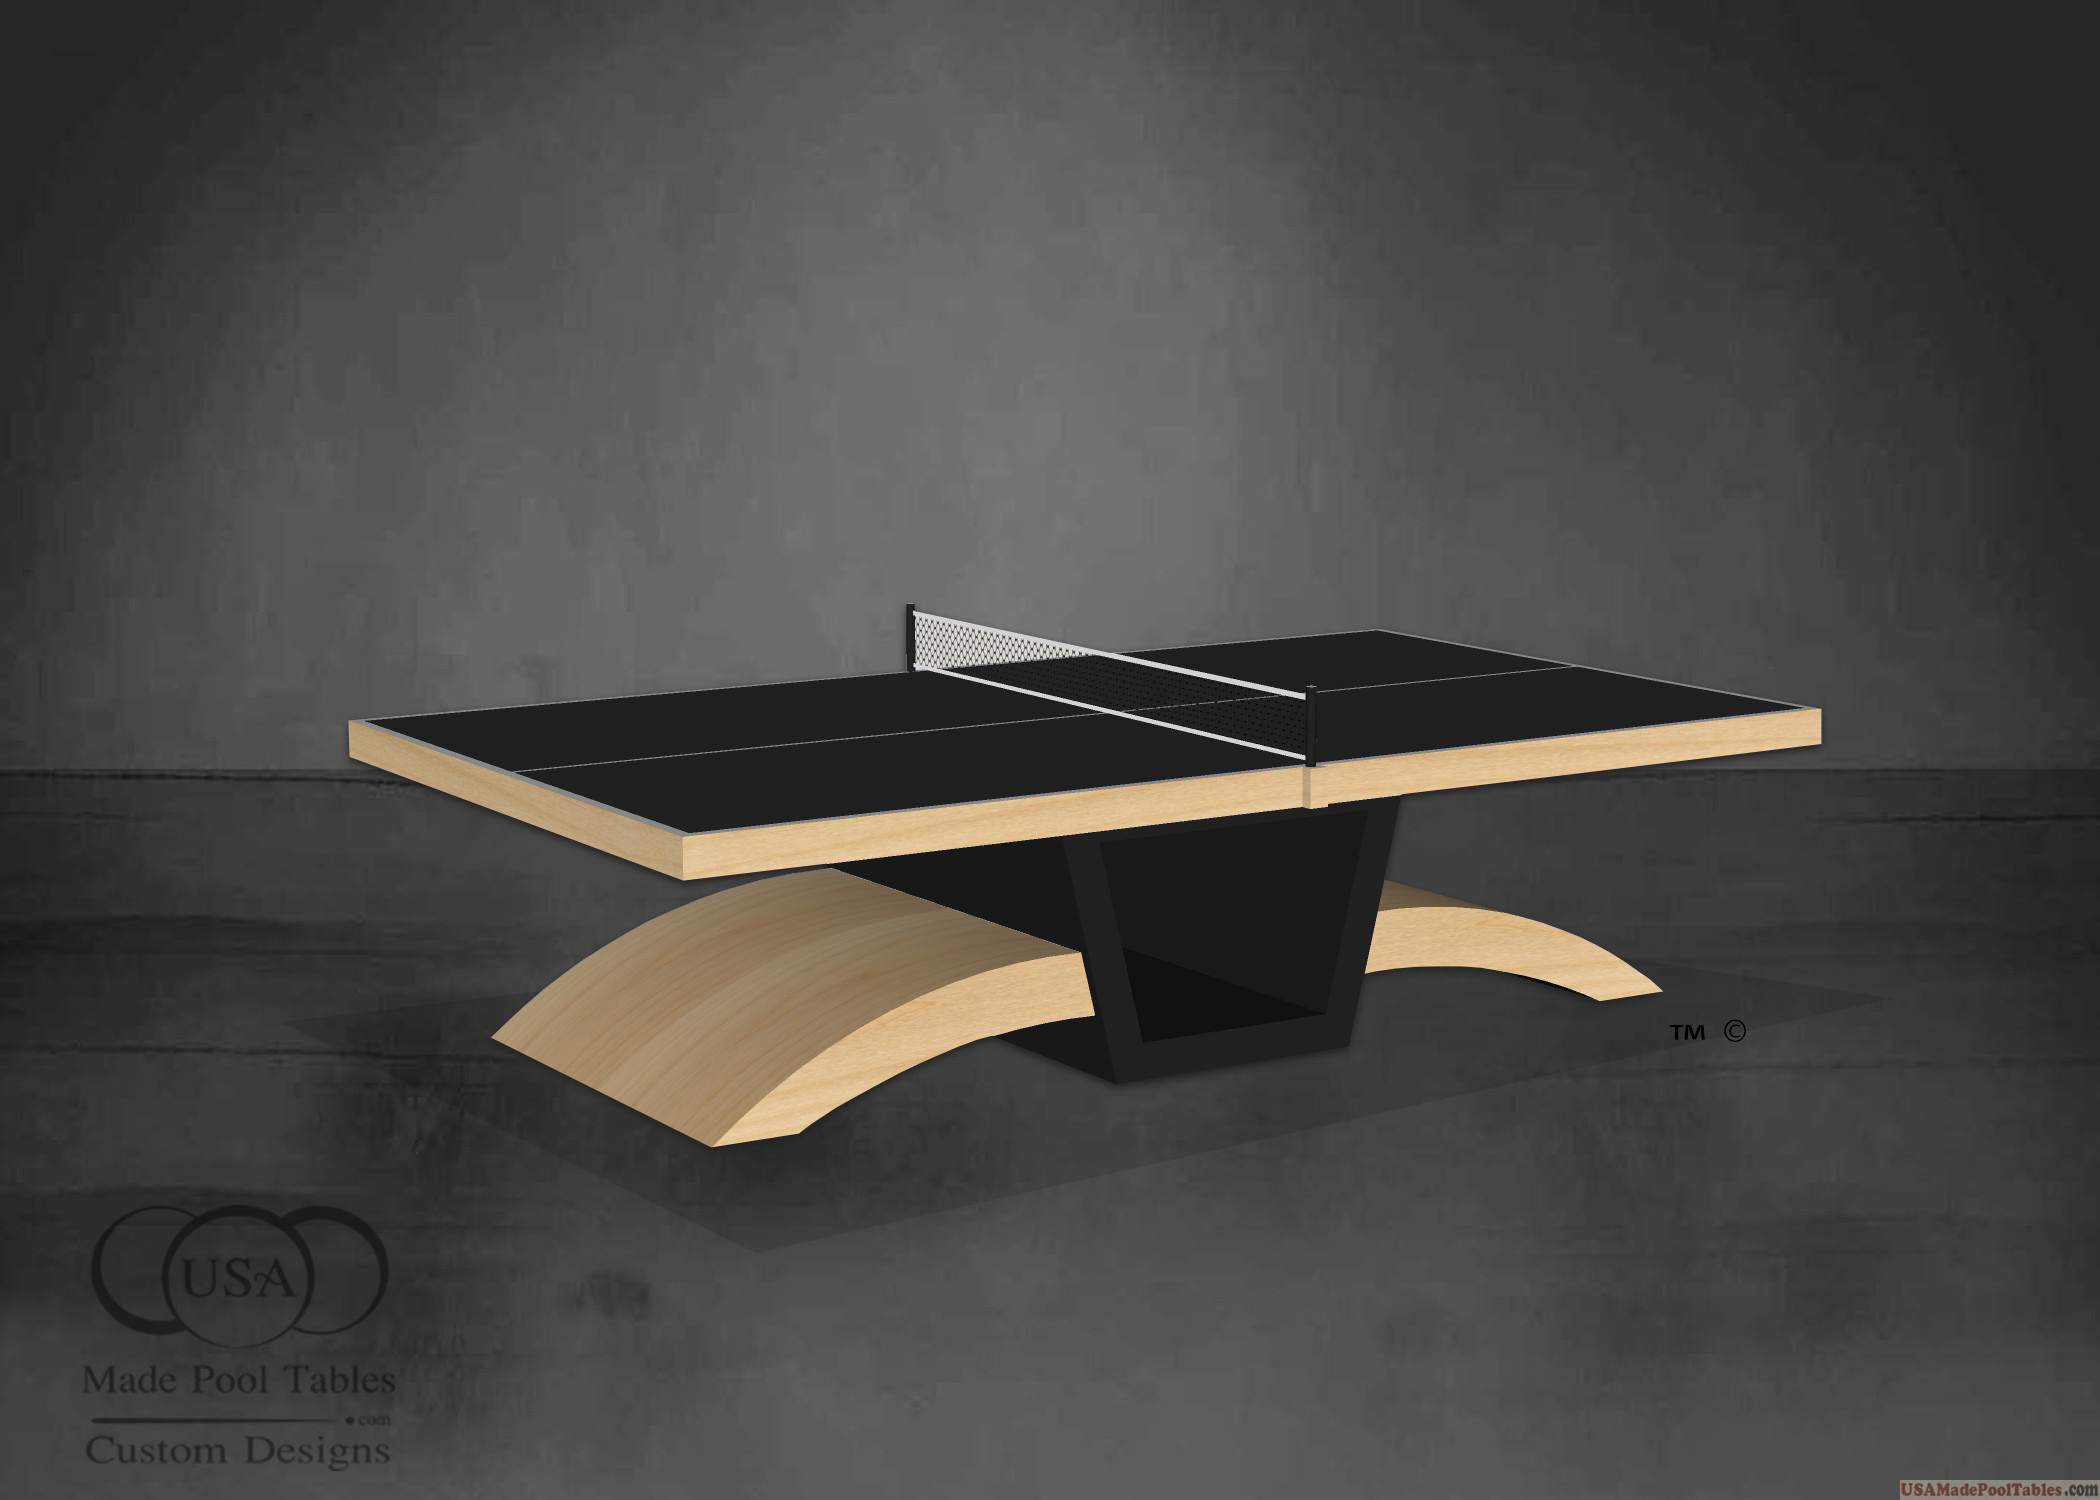 N Maple Ping Pong Tables : Tennis Table